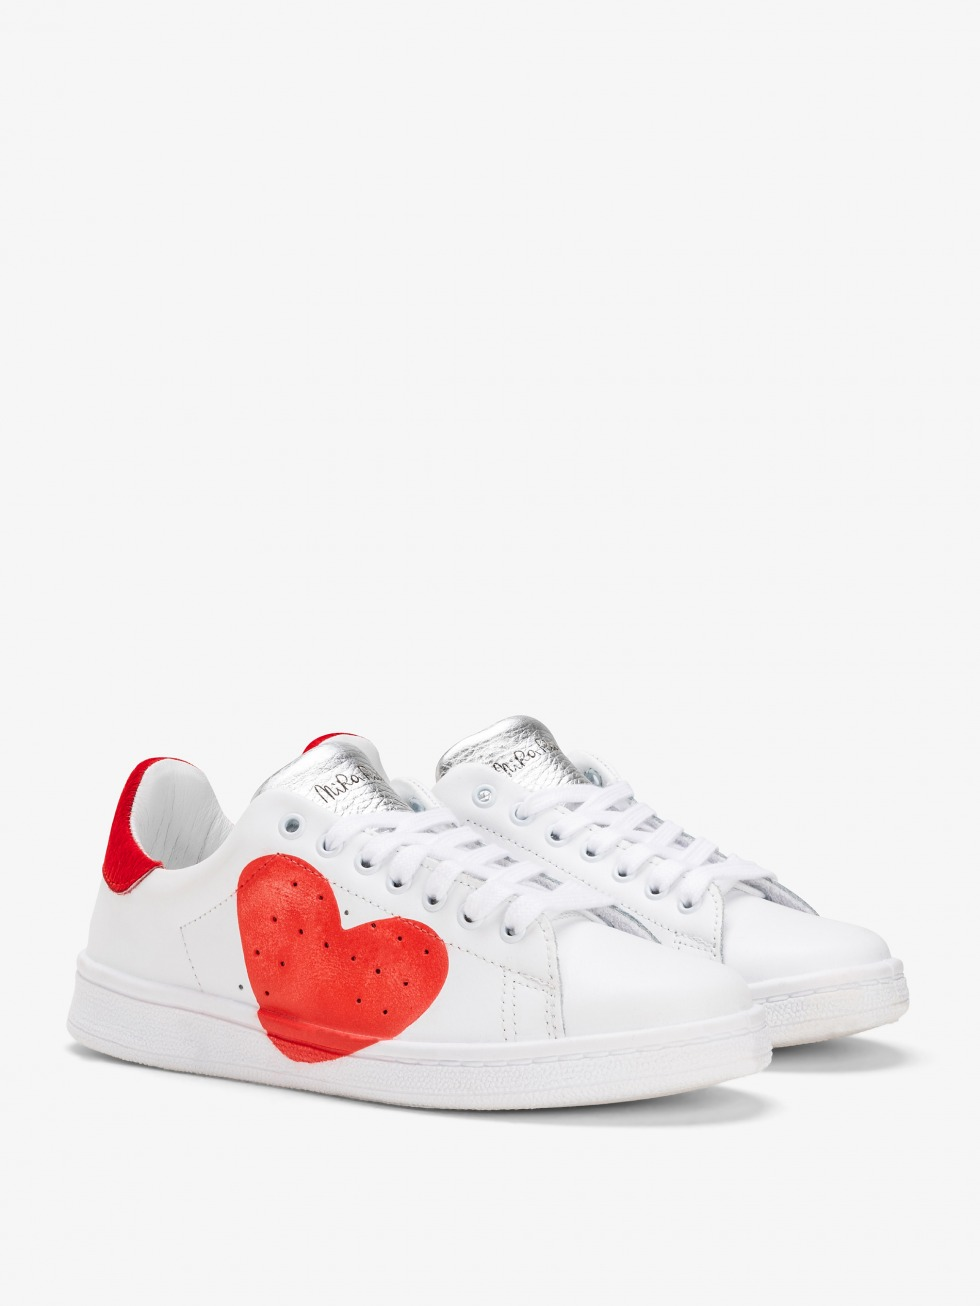 Daiquiri Sneakers - Red Heart